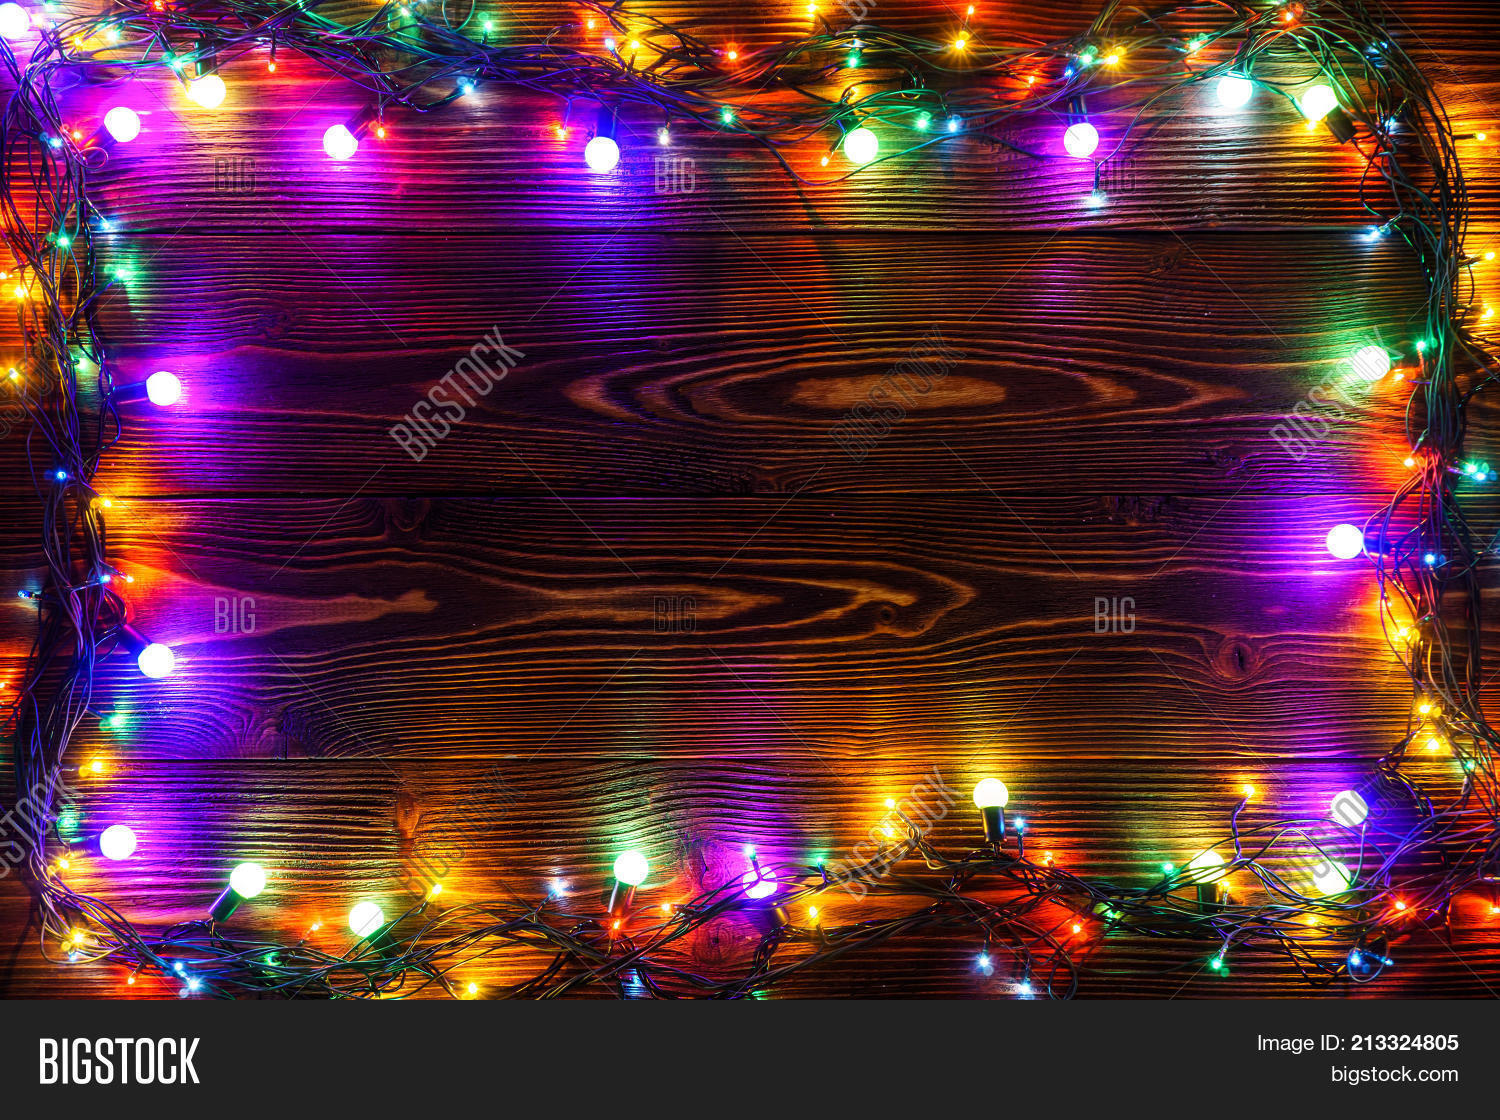 Colorful Christmas Lights Background.Wreath Garlands Image Photo Free Trial Bigstock